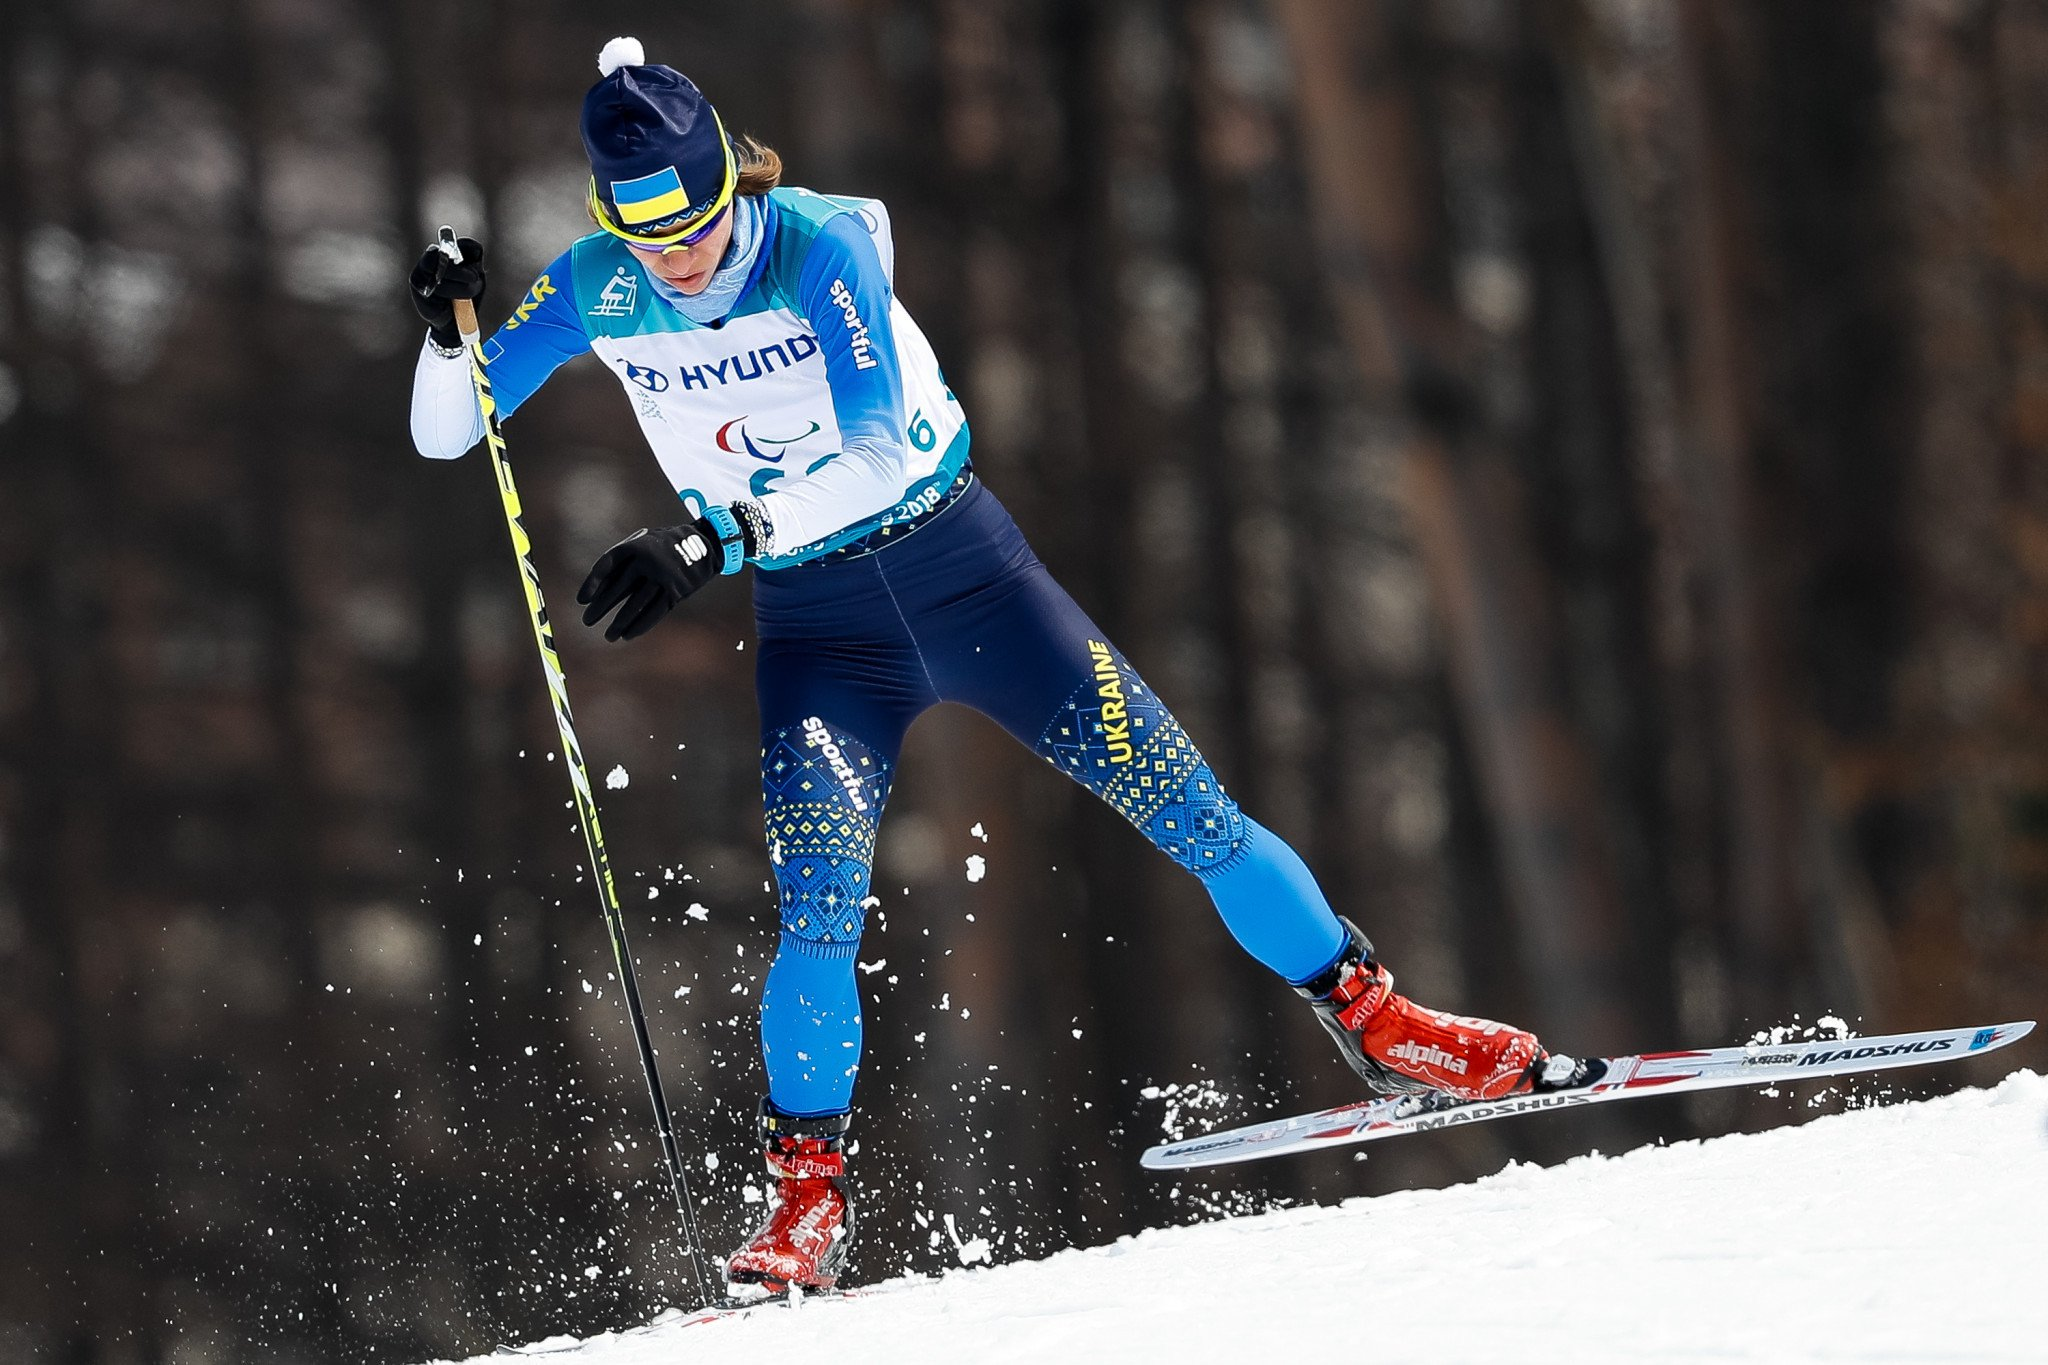 Liudmyla Liashenko topped an all-Ukrainian podium in the women's cross-country standing contest ©Getty Images